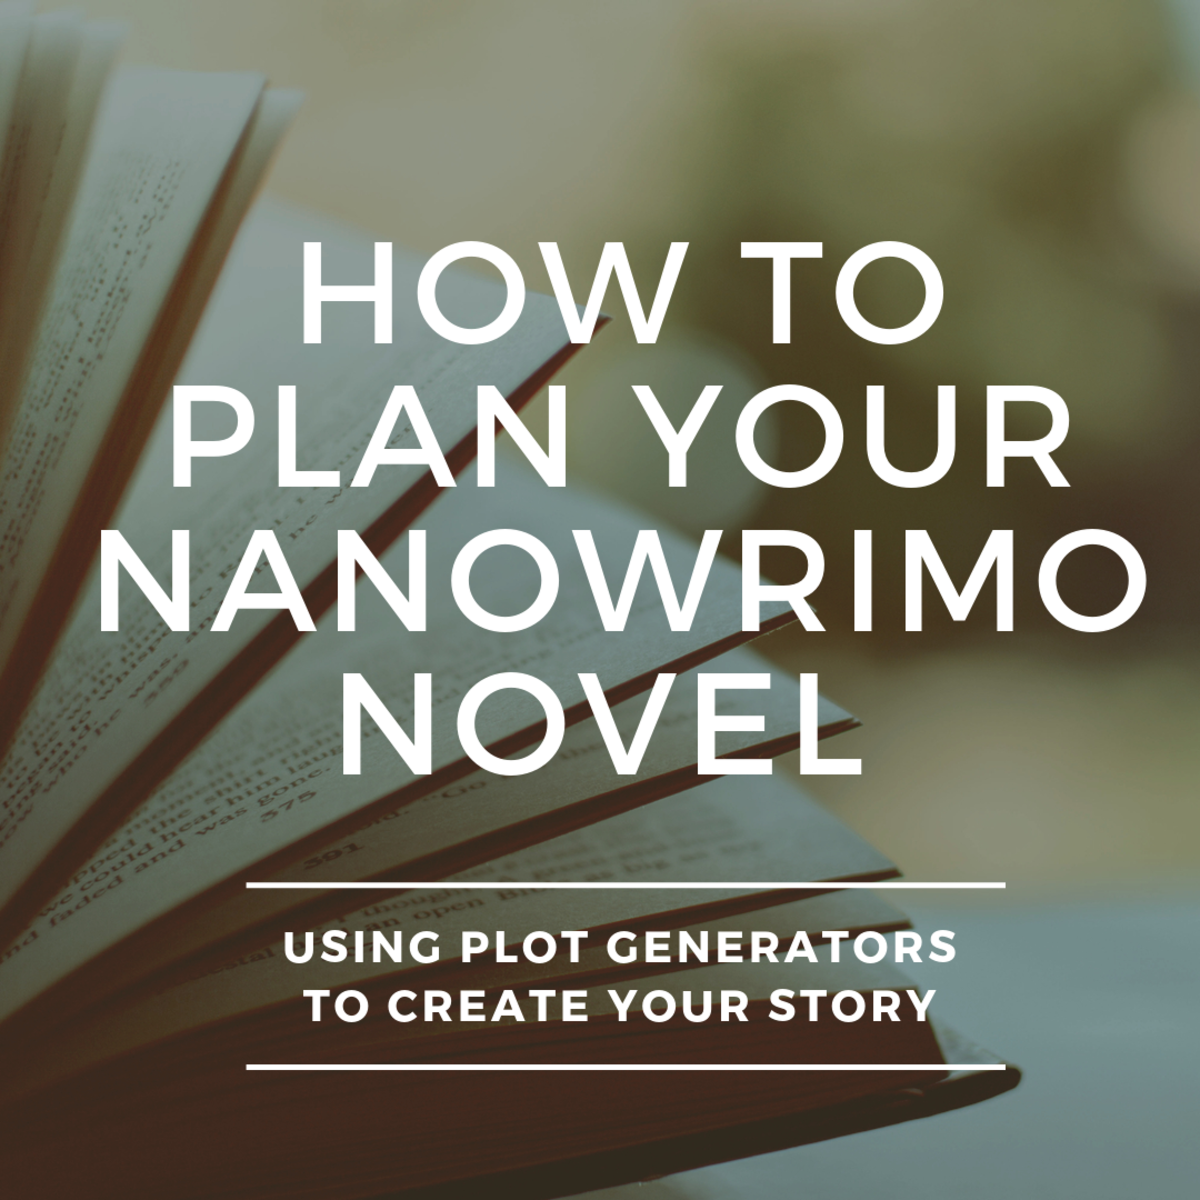 How to Use Plot Generators for NaNoWriMo (Story Ideas & Tips)